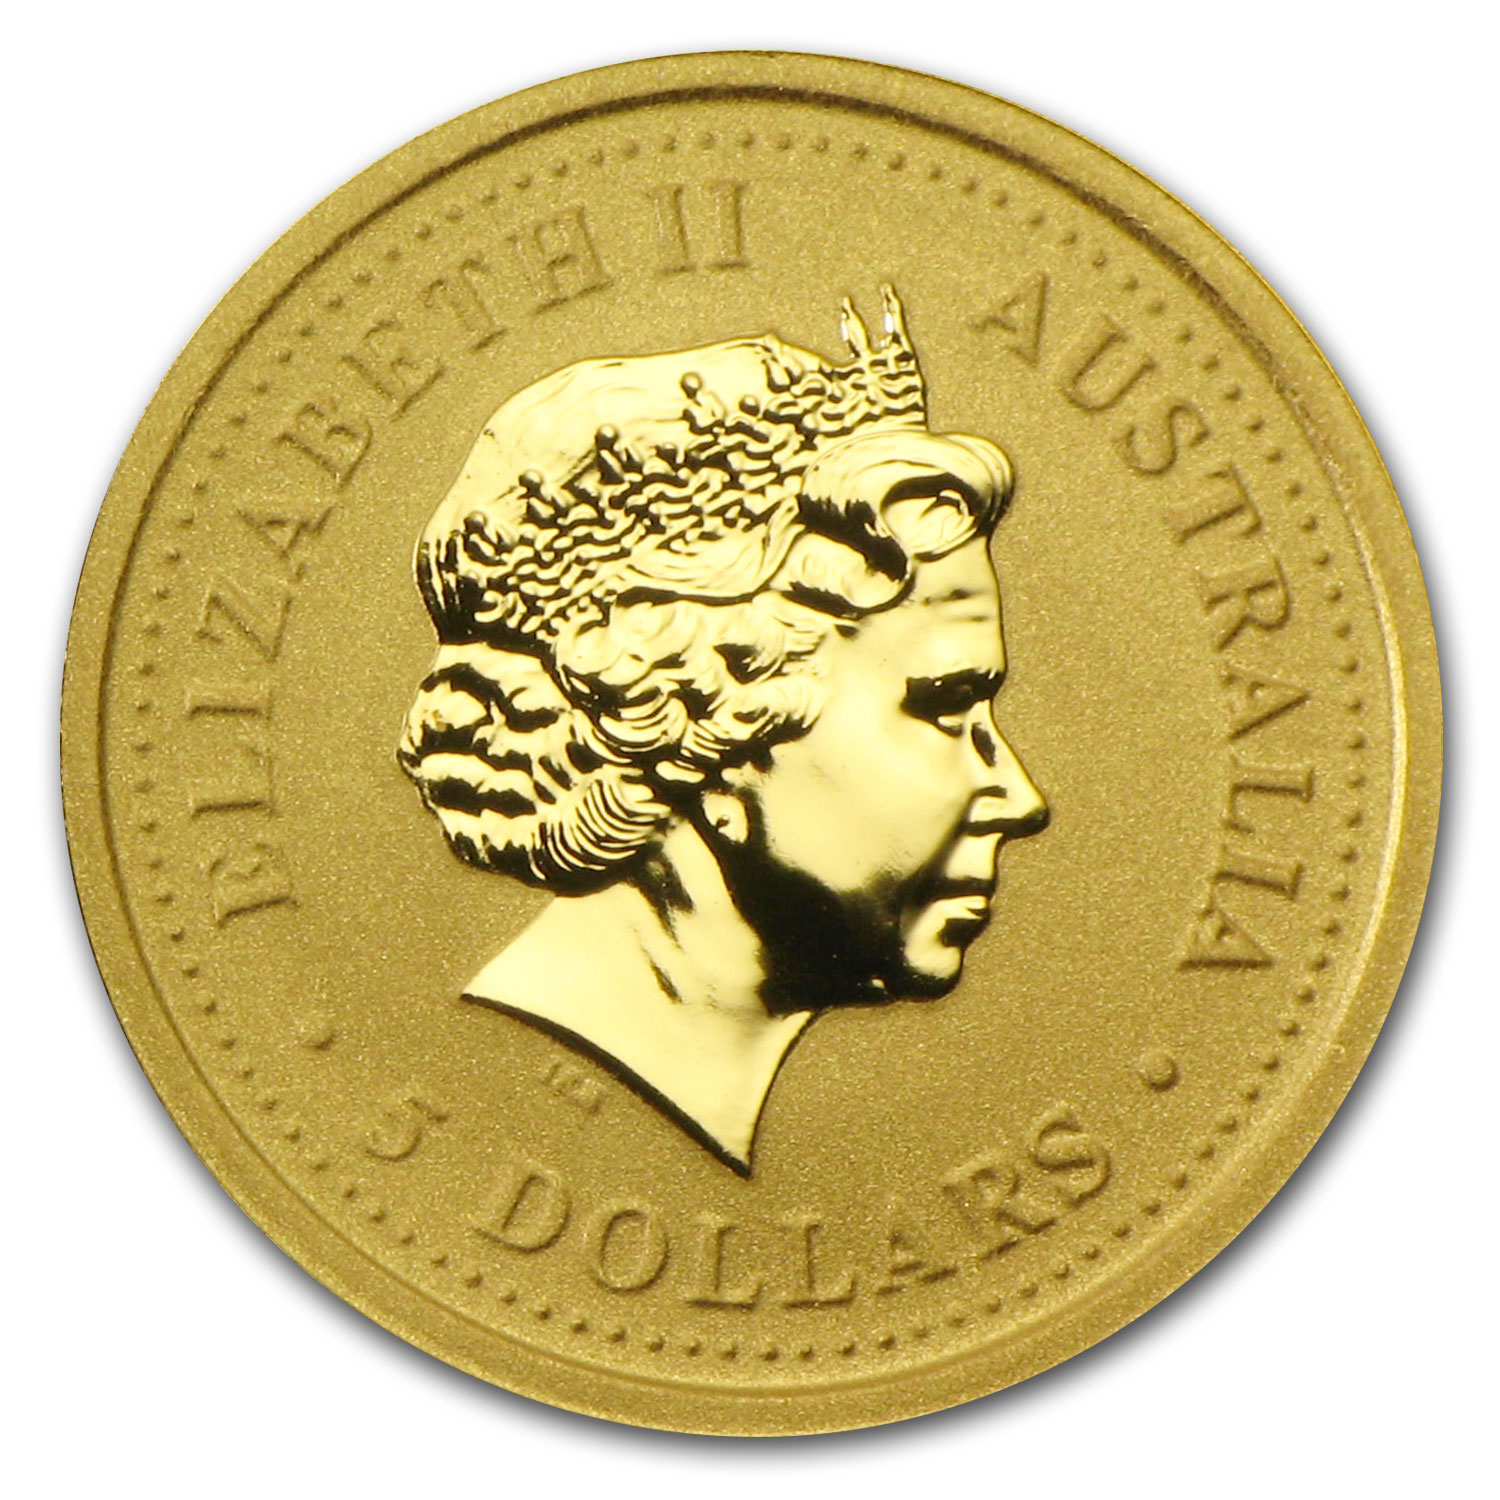 2002 1/20 oz Australian Gold Nugget